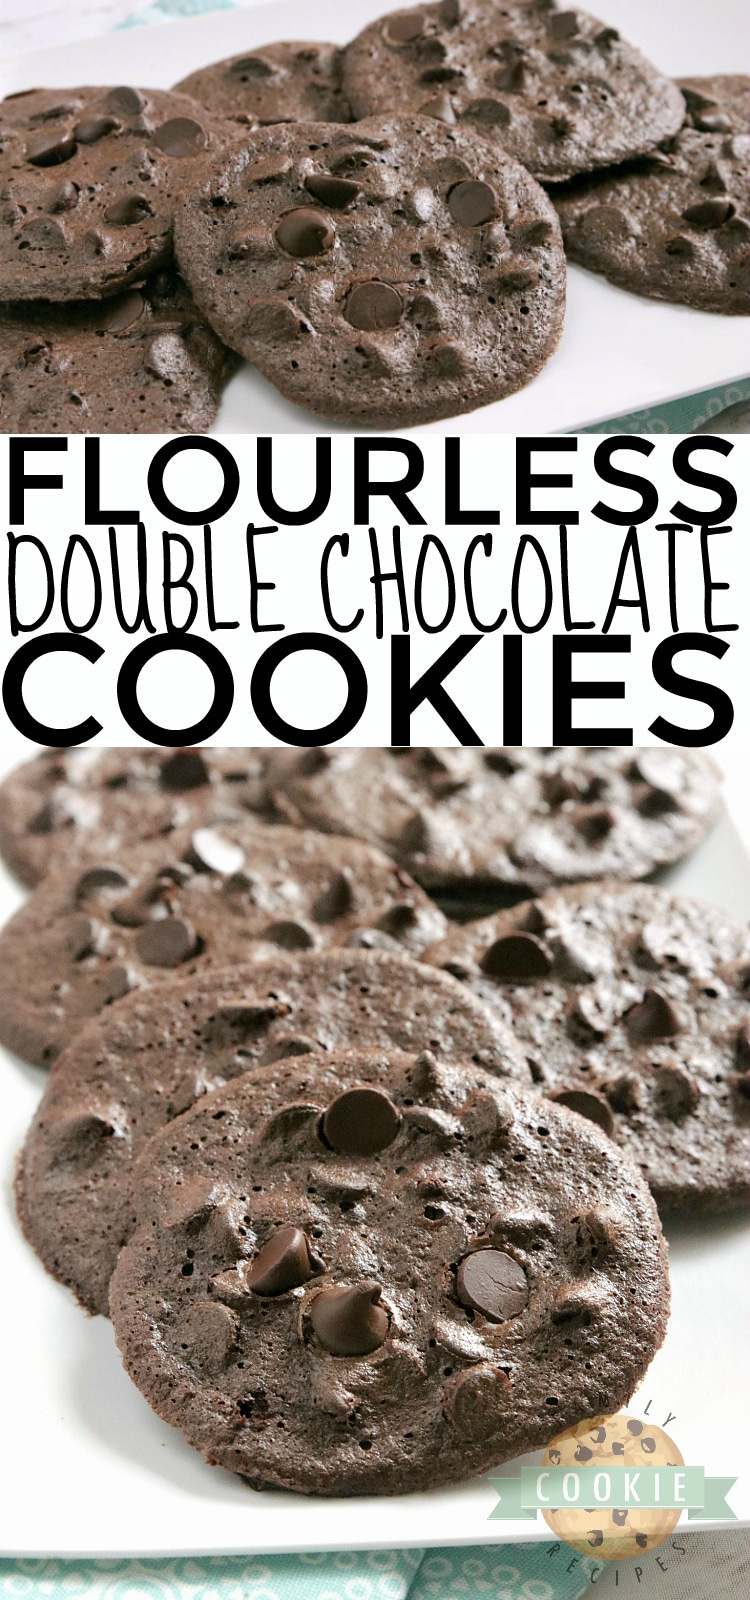 Flourless Double Chocolate Cookies are soft, fudgy and have absolutely no flour in them! The perfect flourless cookie recipe, whether you need a gluten-free cookie or even if you just don't have any flour on hand! via @familycookierecipes